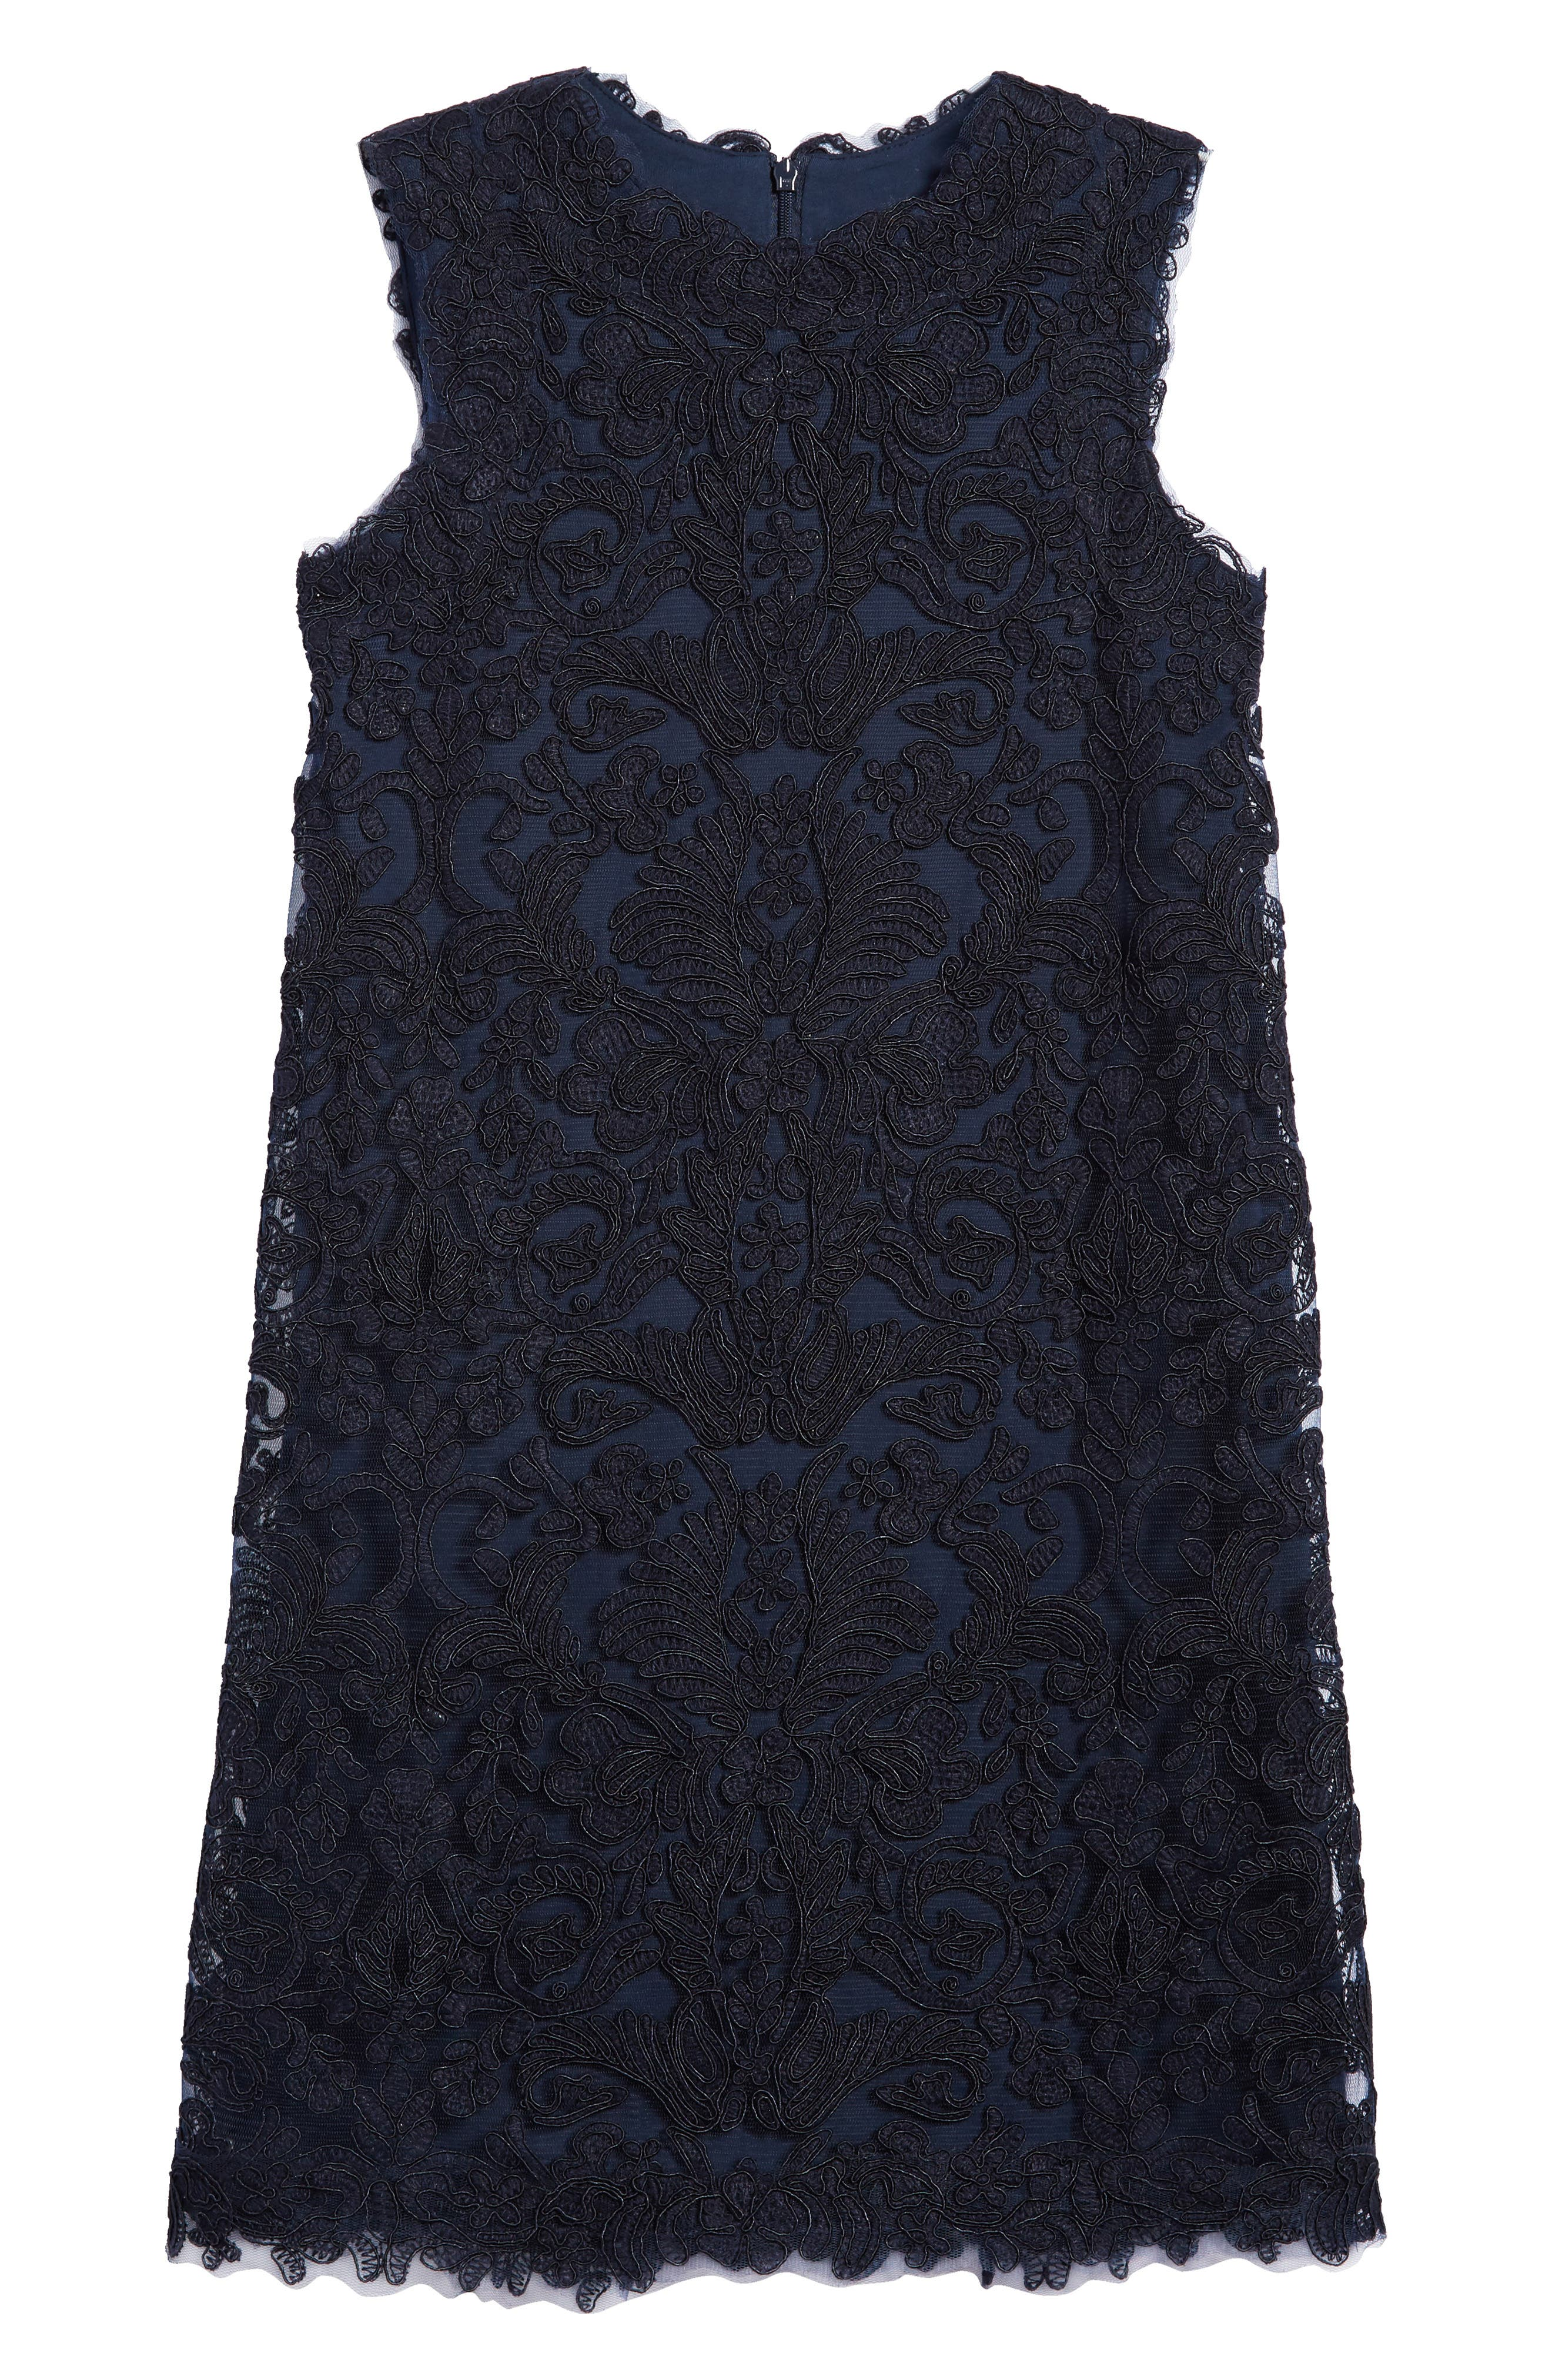 'Honeysuckle' Embroidered Tulle Dress,                             Main thumbnail 1, color,                             415